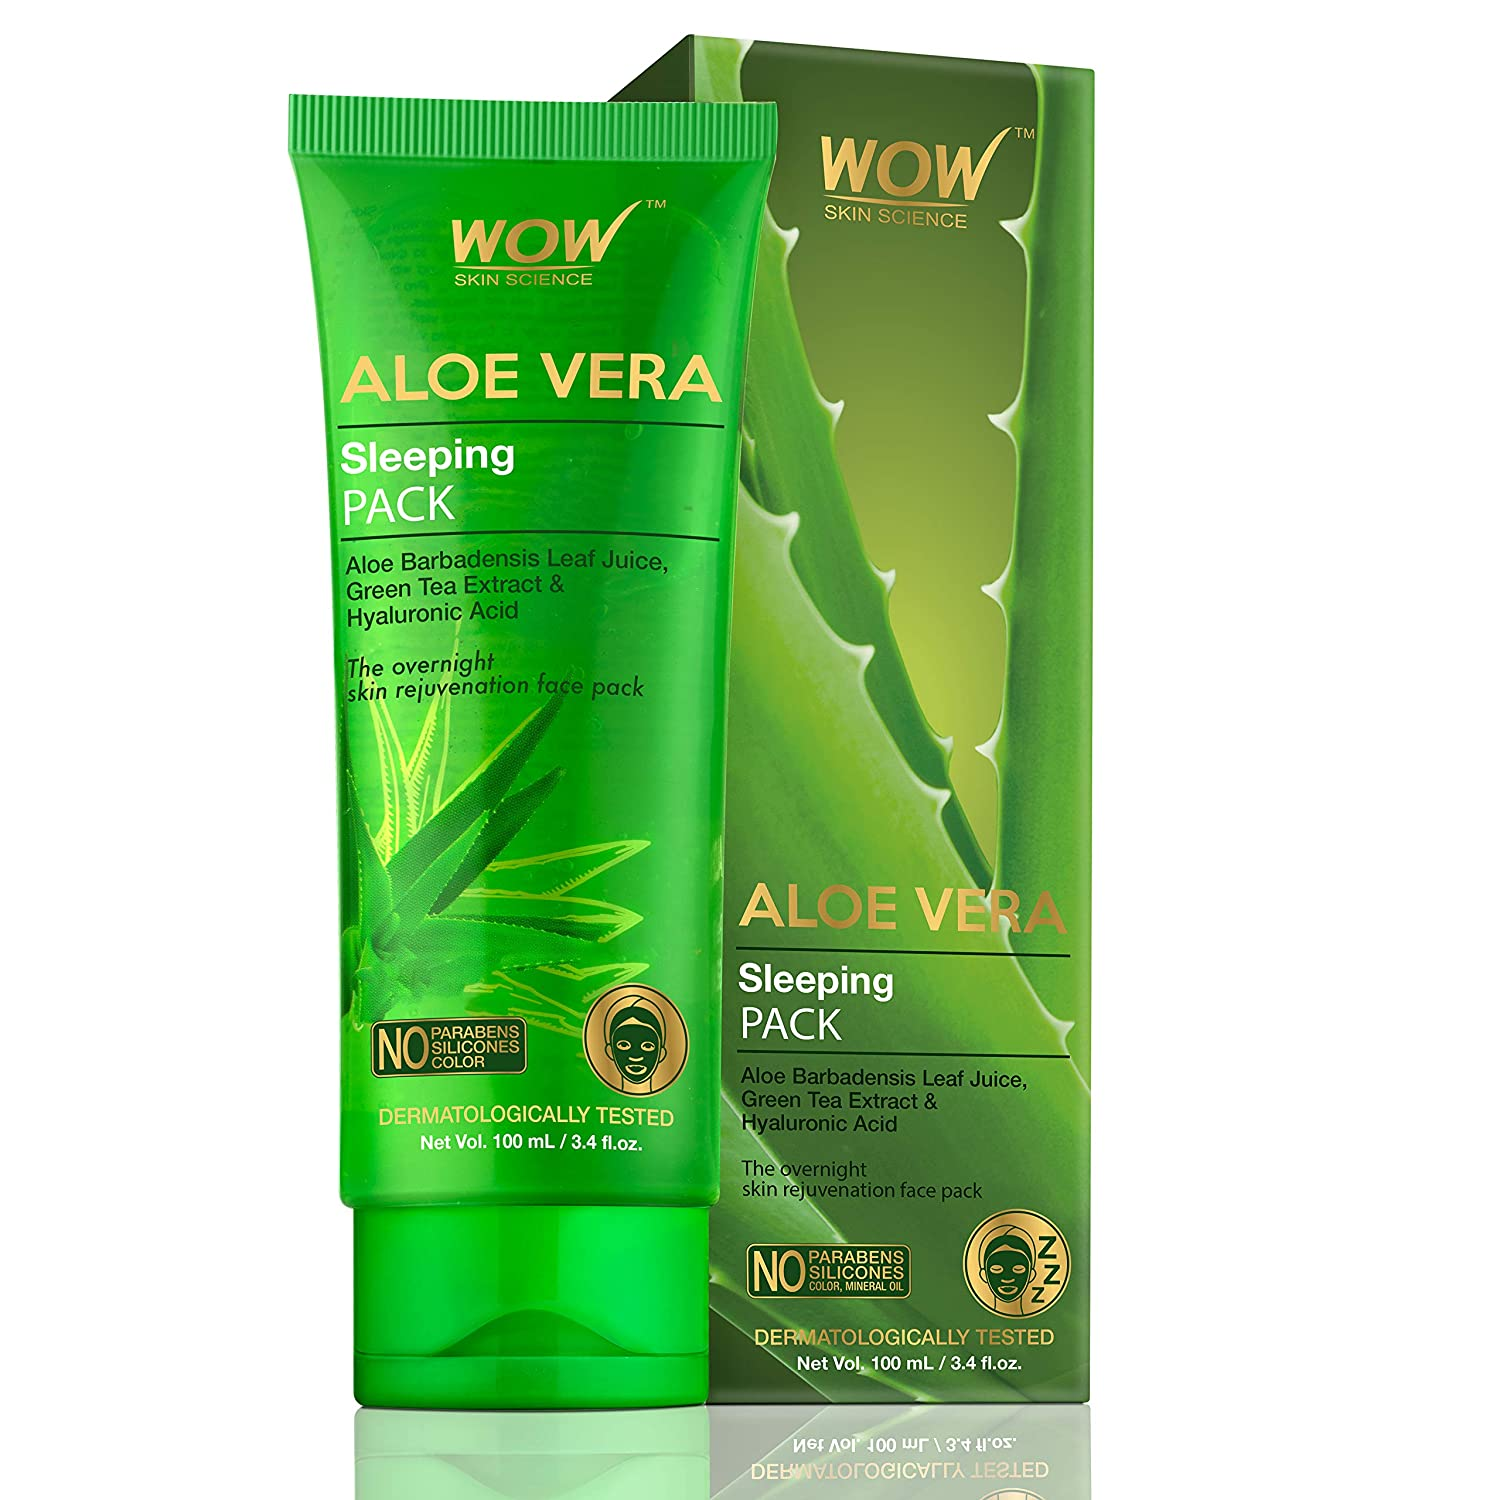 WOW Skin Science Aloe Vera With Green Tea Extract and Hyaluronic Acid Sleeping Pack, 100 ml